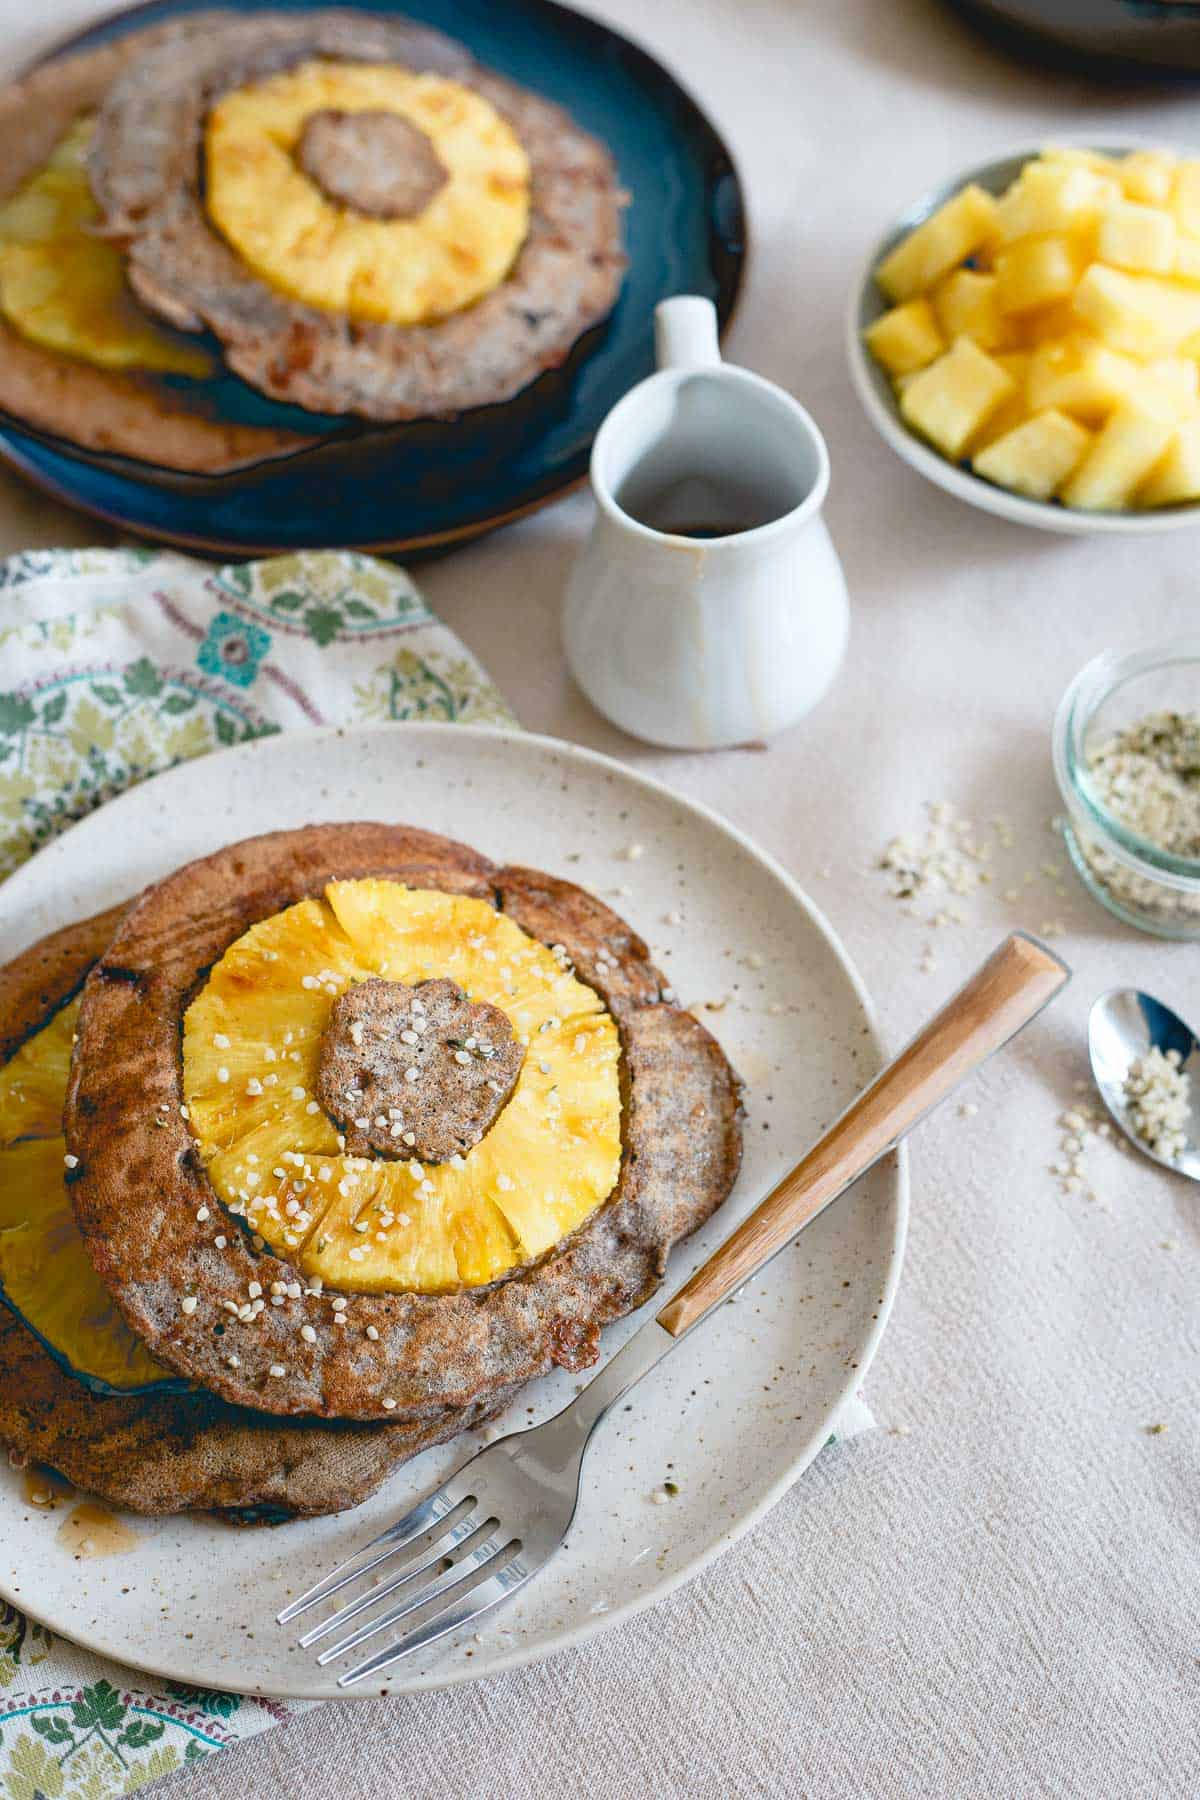 Gluten-free and hearty, these pineapple buckwheat pancakes are a great start to the day!